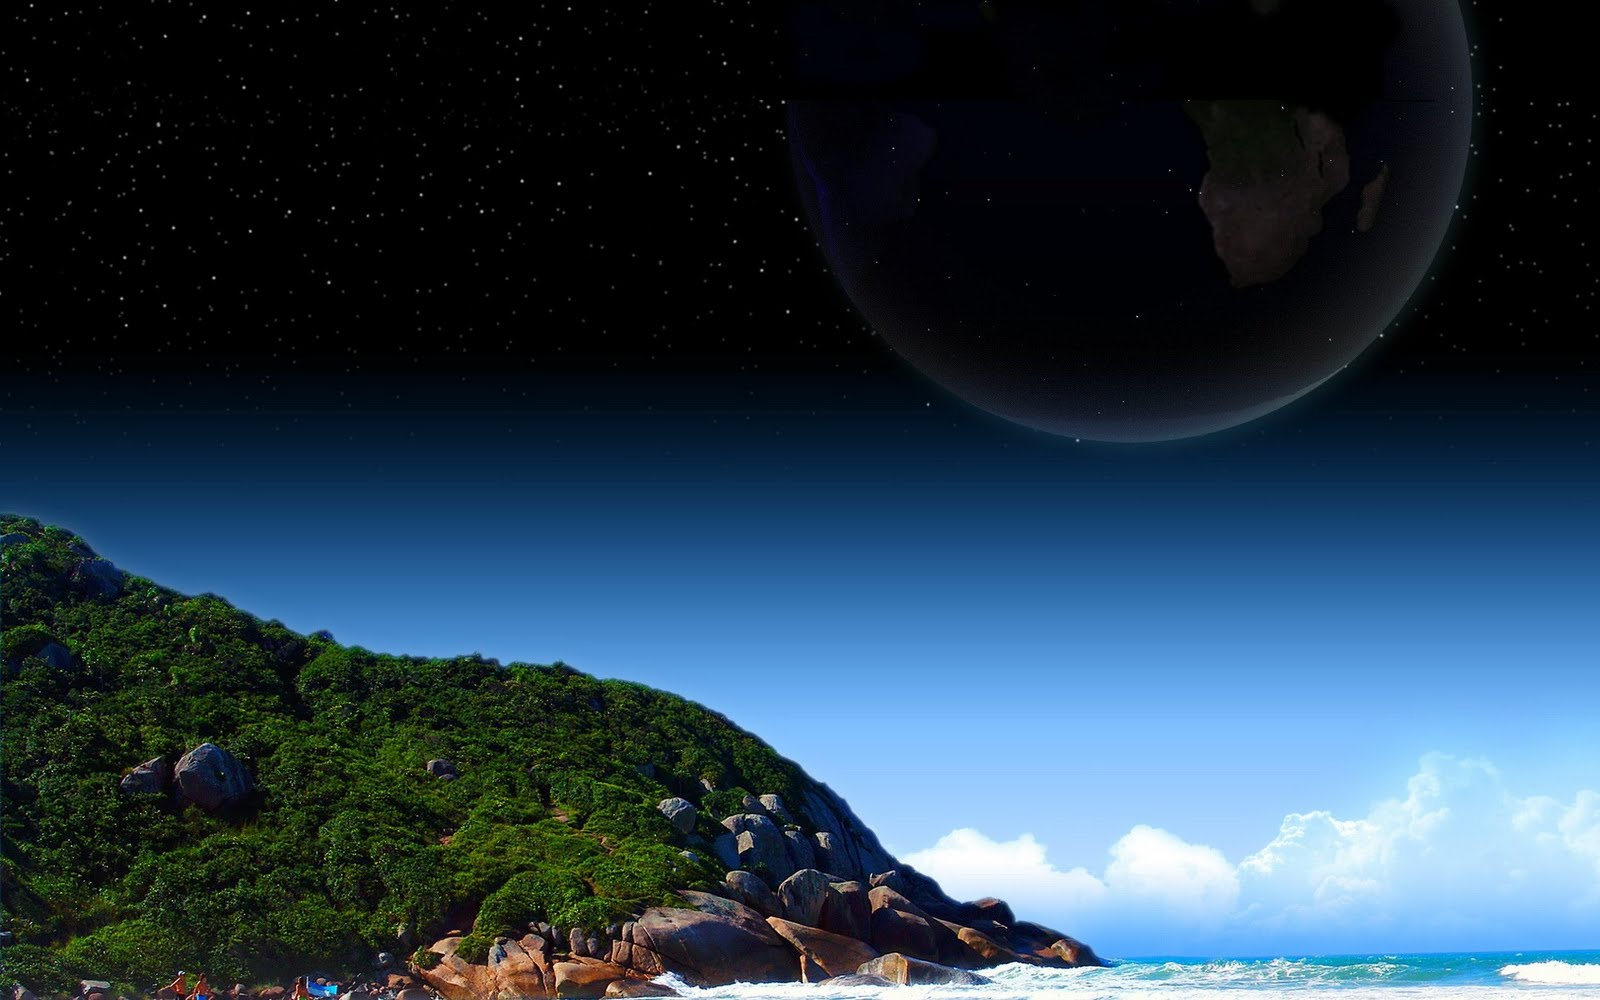 Free download WALLPAPER 3D ANIMATED 3D SCREENSAVER ANIMATED